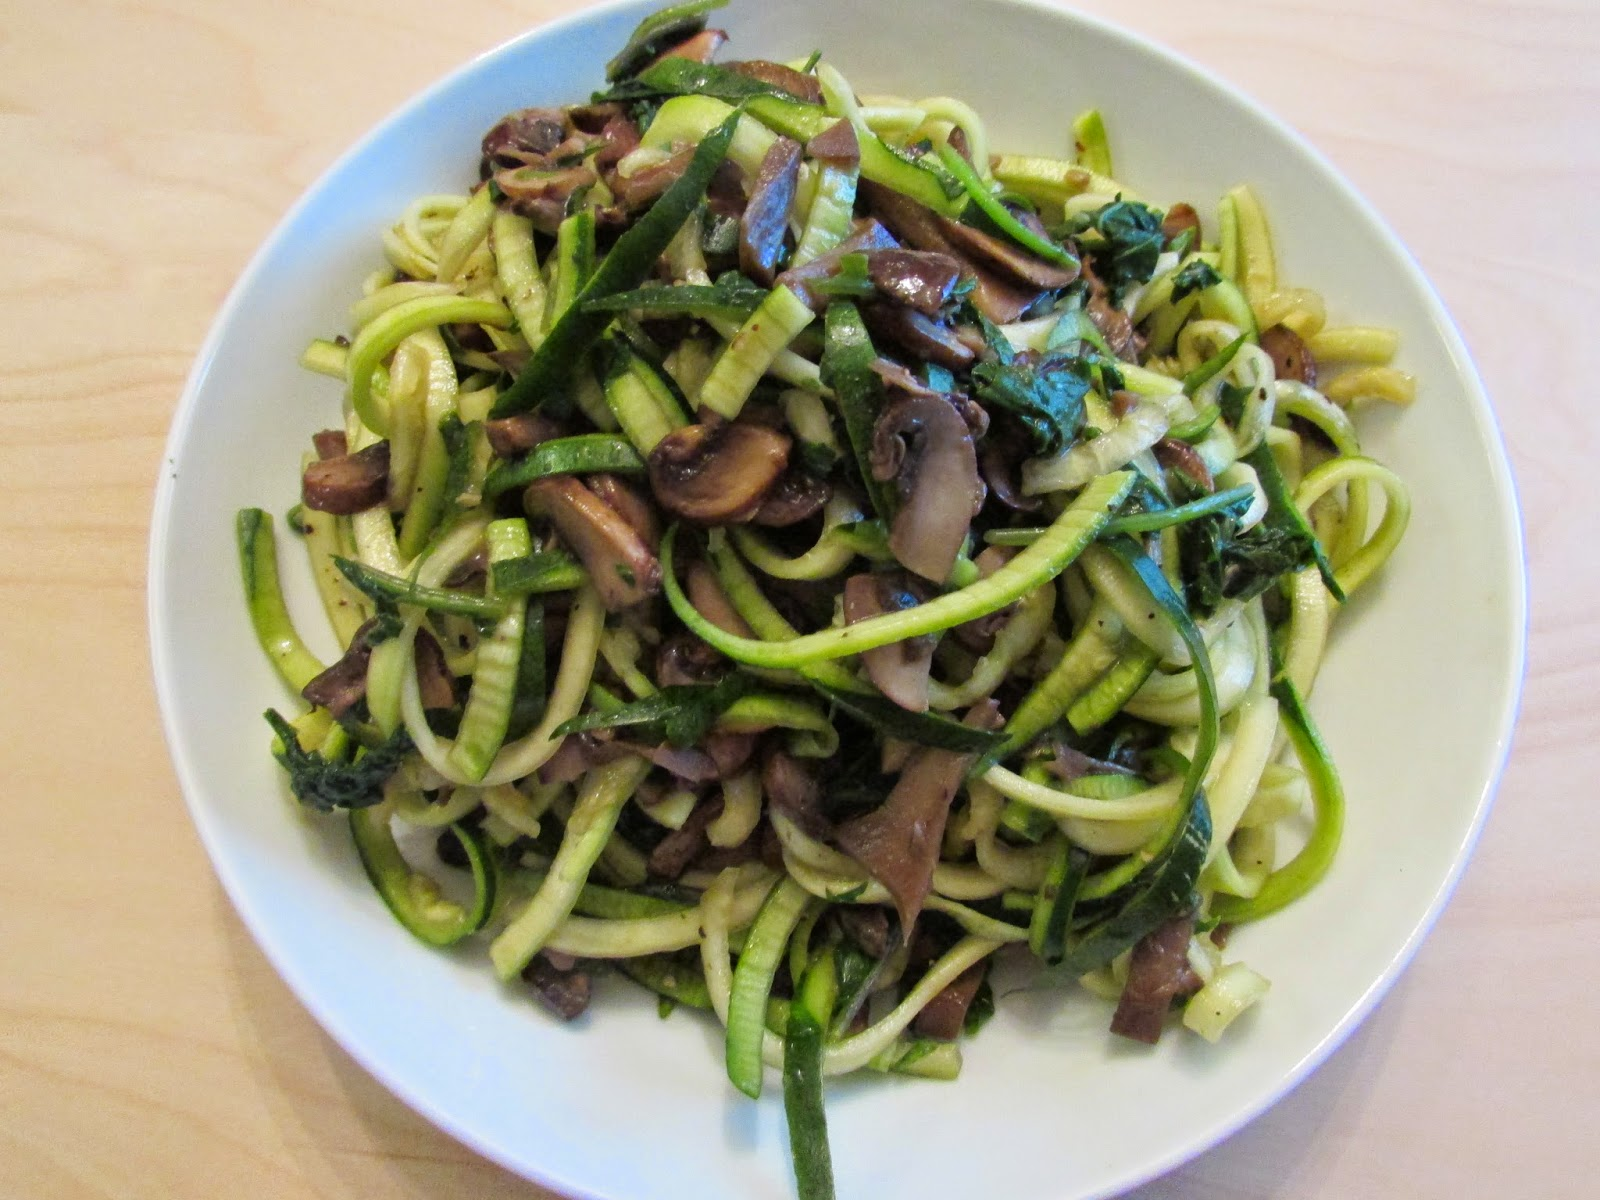 Zucchini Noodles with Mushrooms and Kale by http://vegan-plus-fish.blogspot.com/